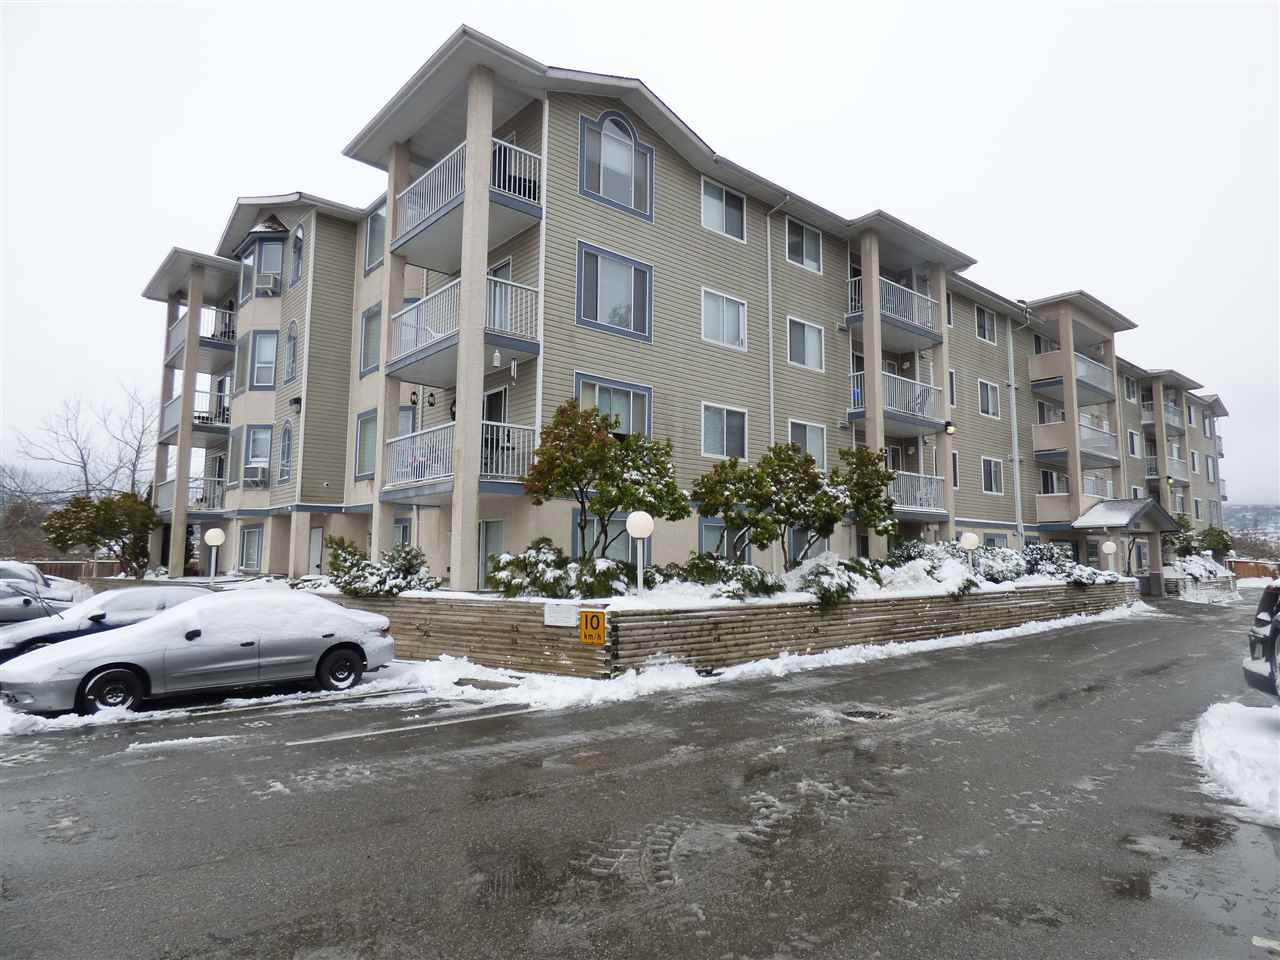 Main Photo: 207 8537 YOUNG Road in Chilliwack: Chilliwack W Young-Well Condo for sale : MLS®# R2231750